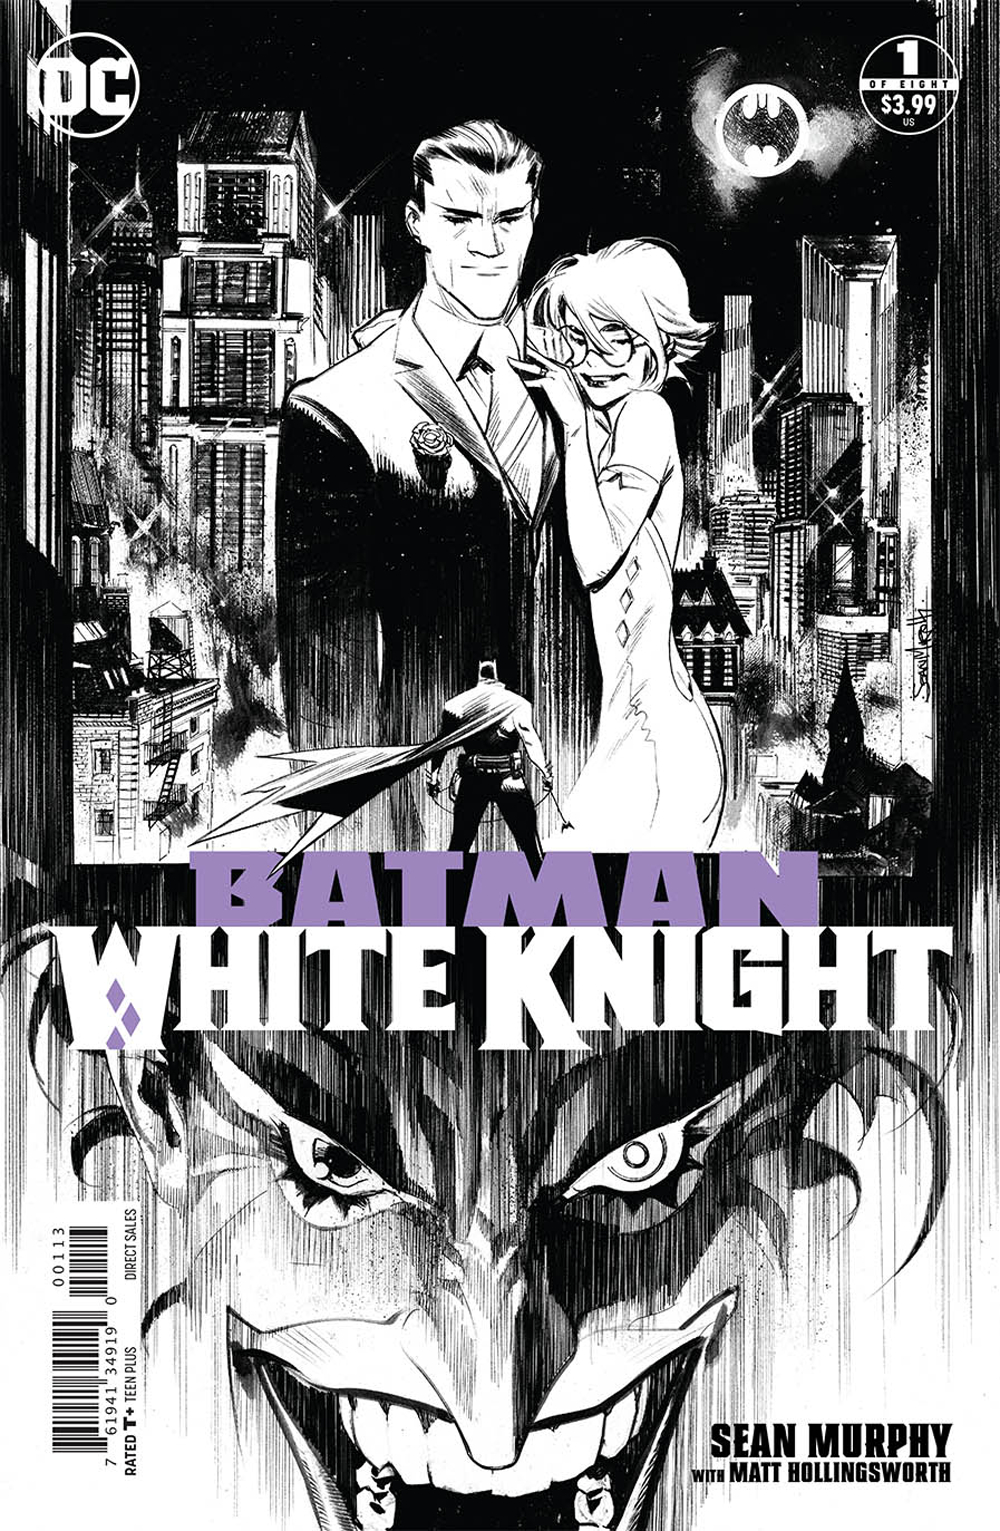 BATMAN WHITE KNIGHT #1 (OF 8) 3RD PTG